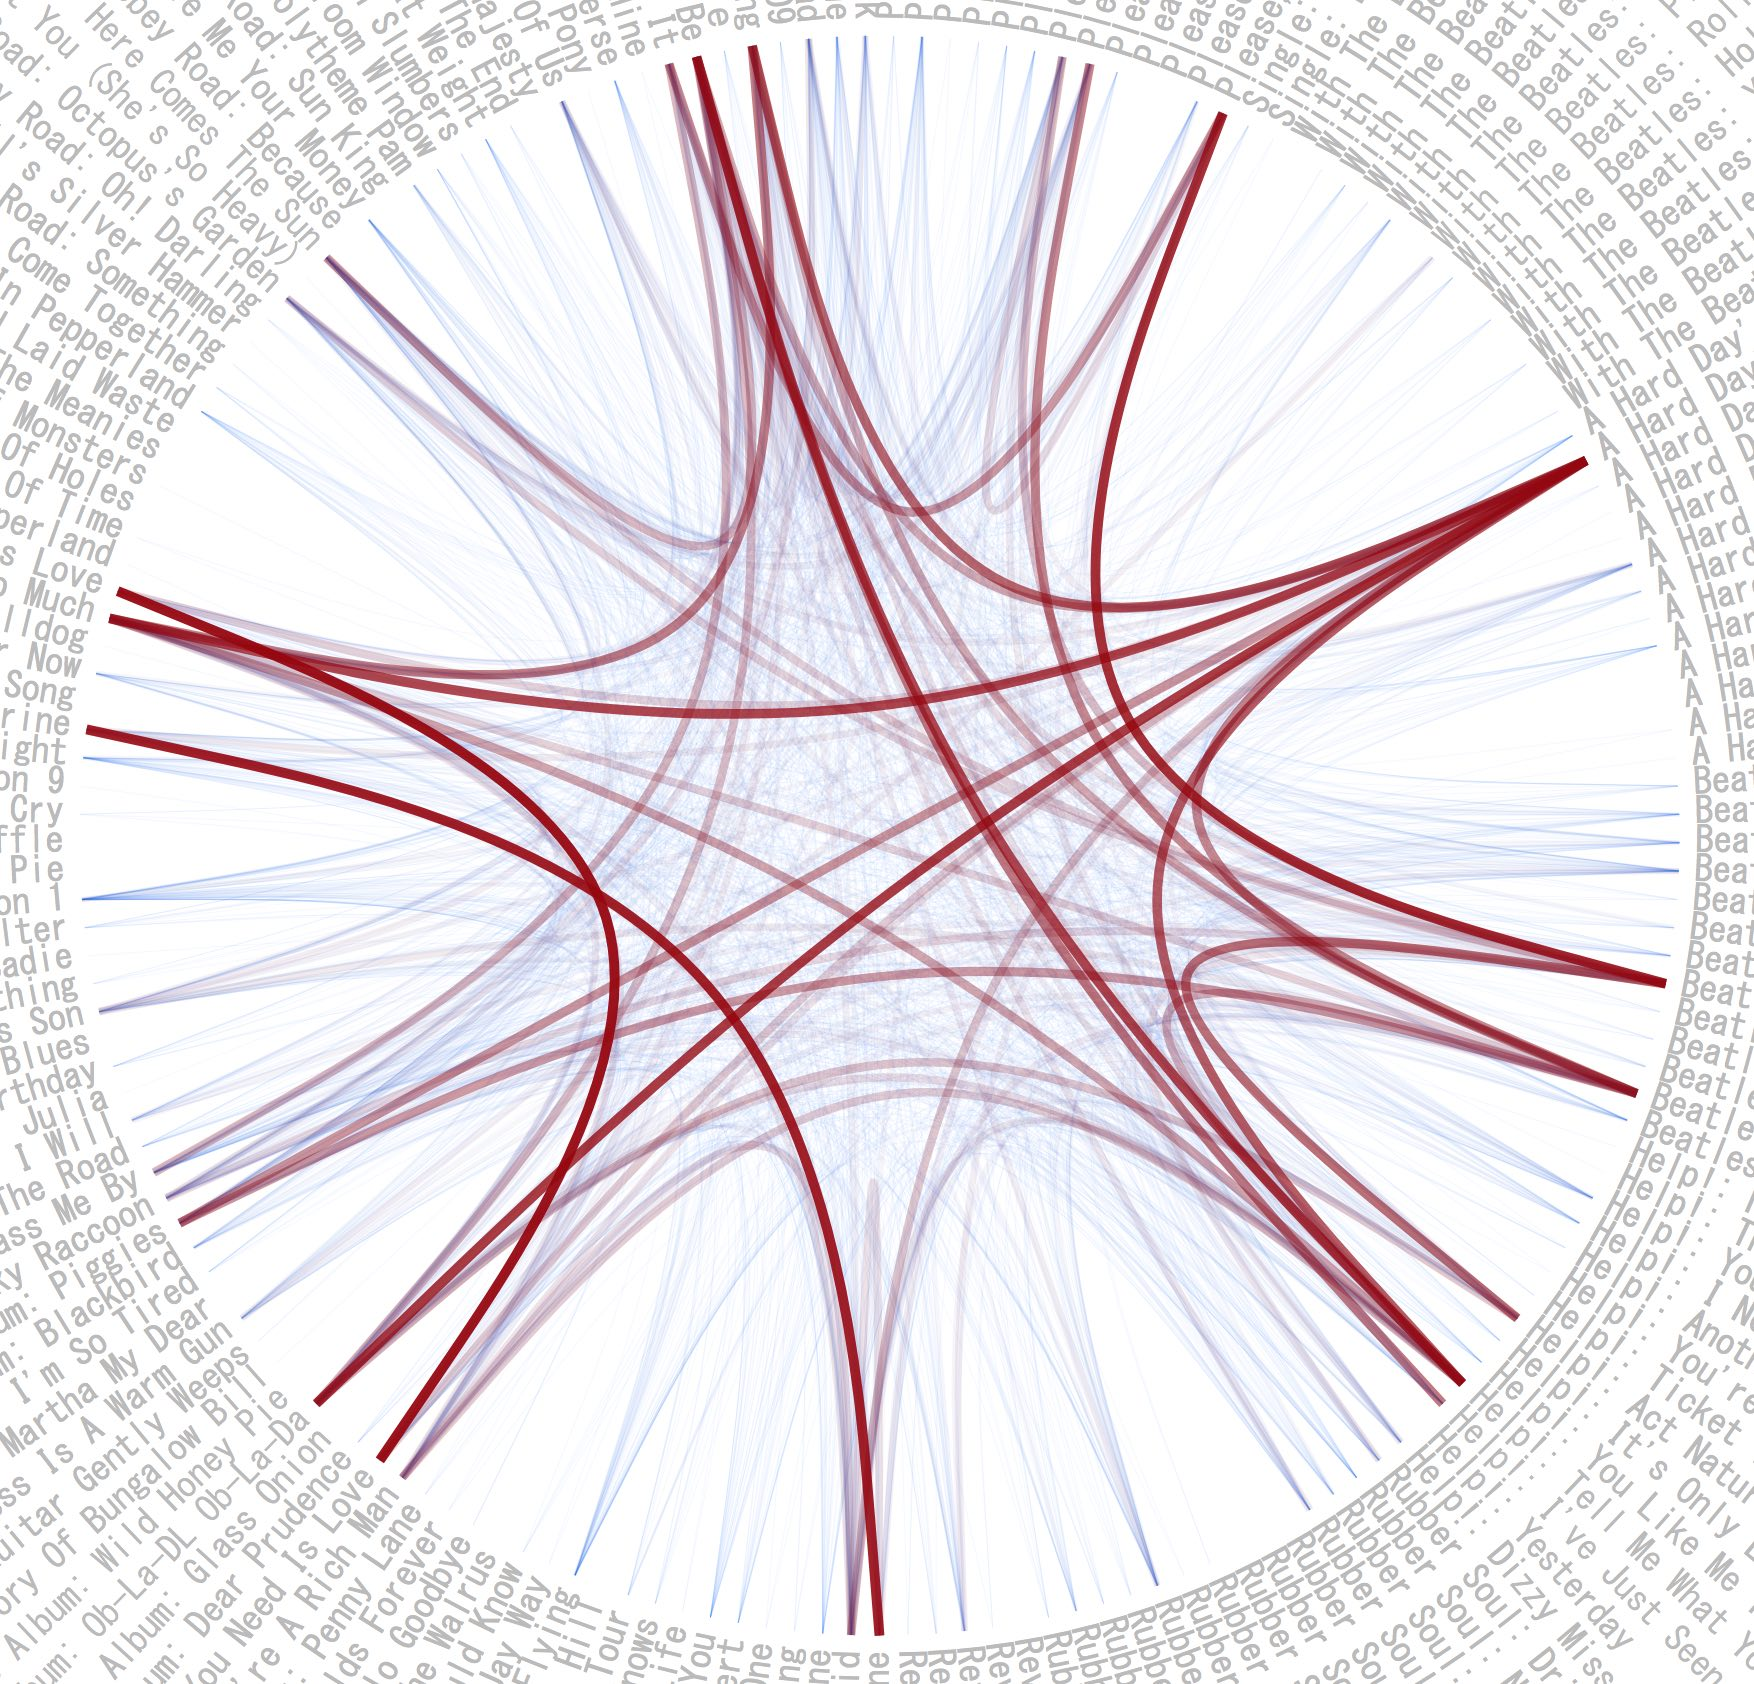 A radial graph of red and blue curved lines connecting song titles.